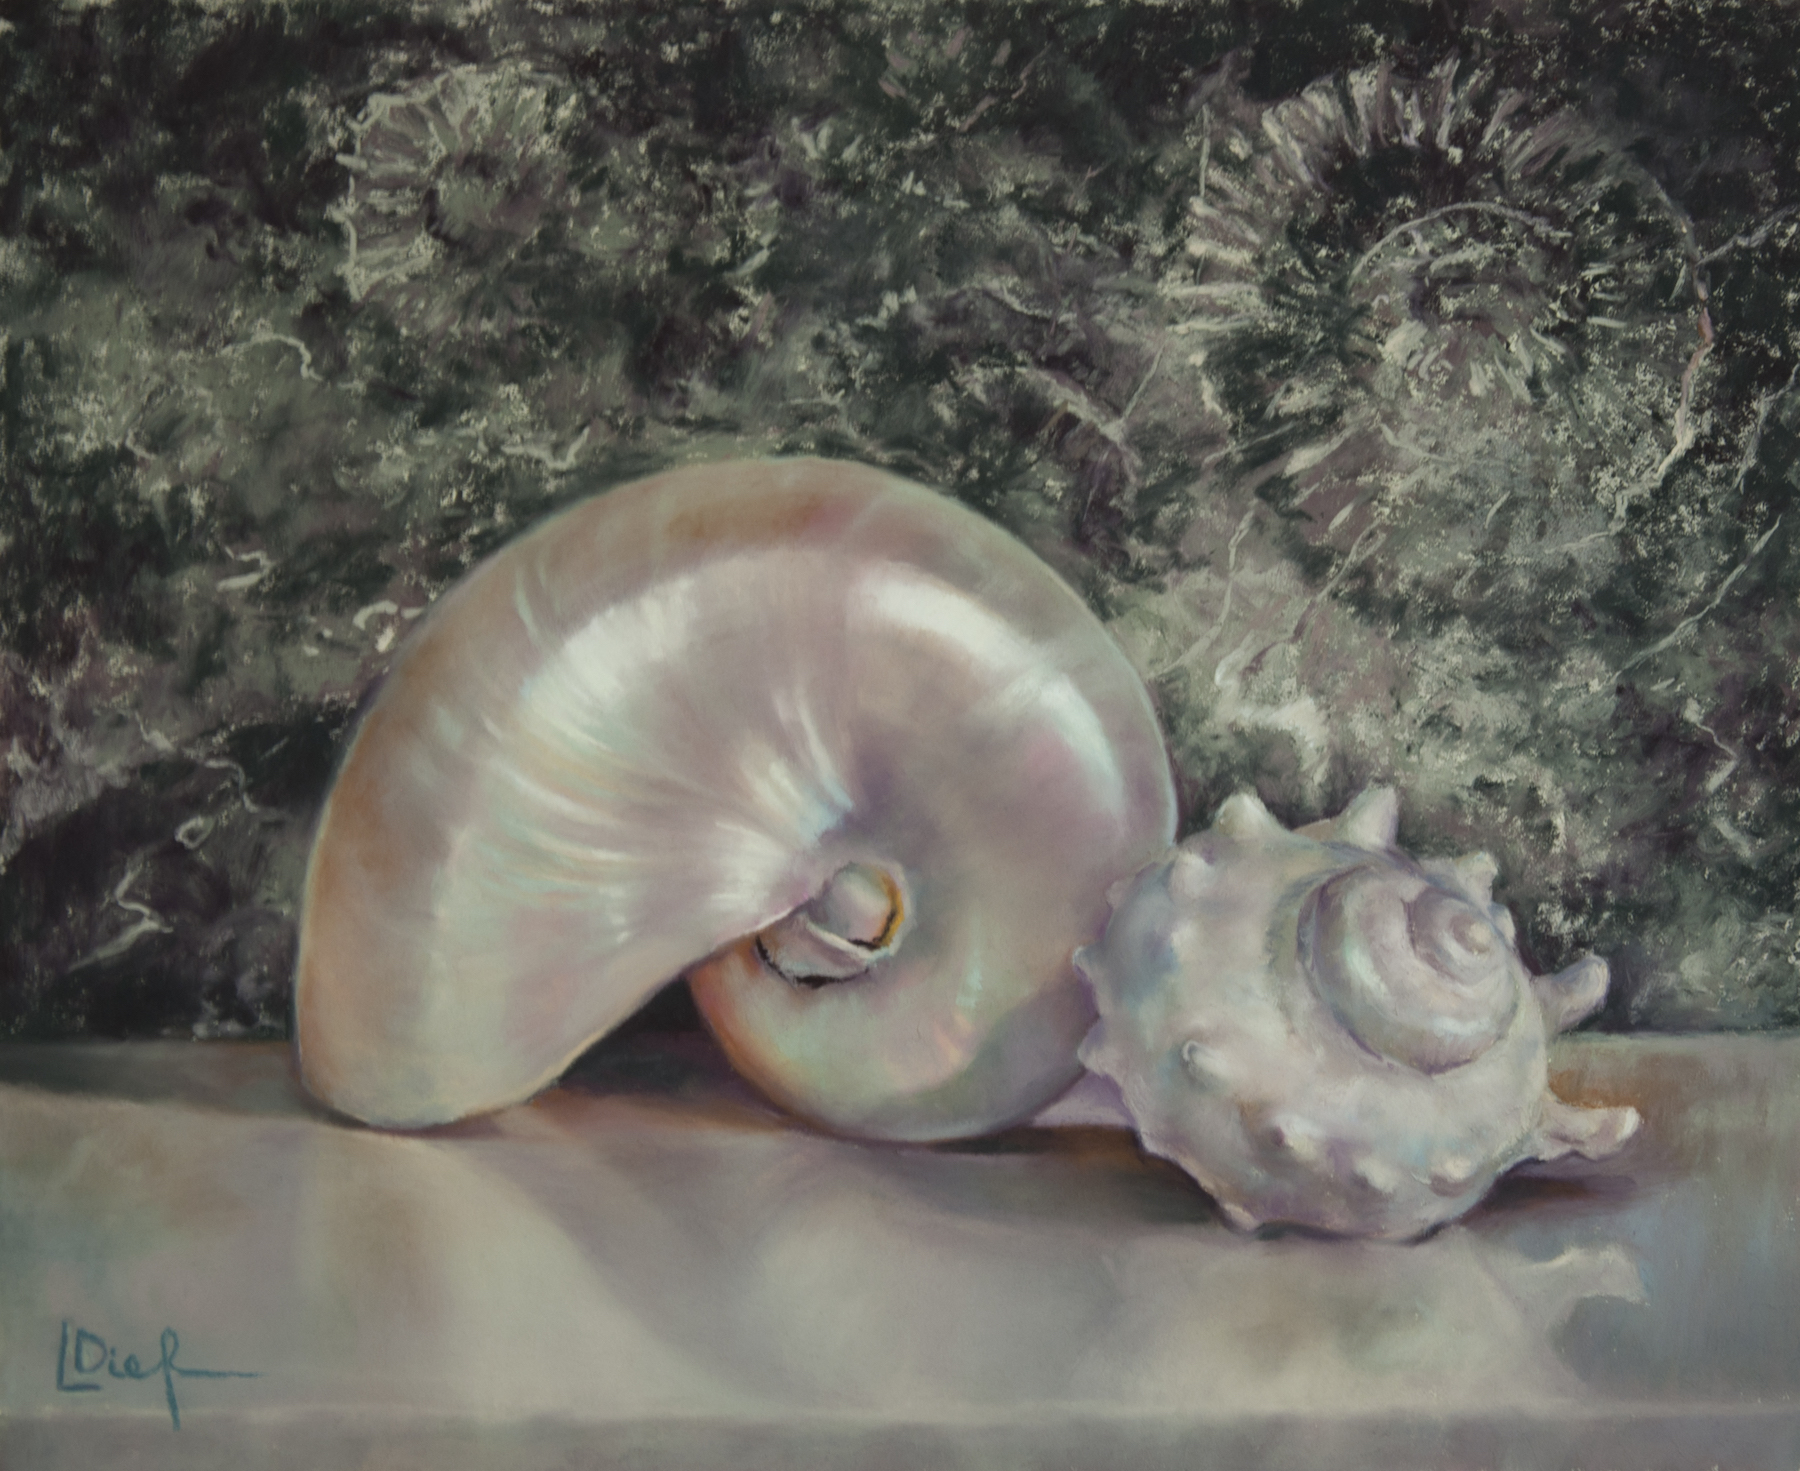 """Lyn Diefenbach, """"Like a Circle, Like a Spiral,"""" Dec 2016, Pastel on Fisher 400, 12.75 x 15.5 in. Sold."""